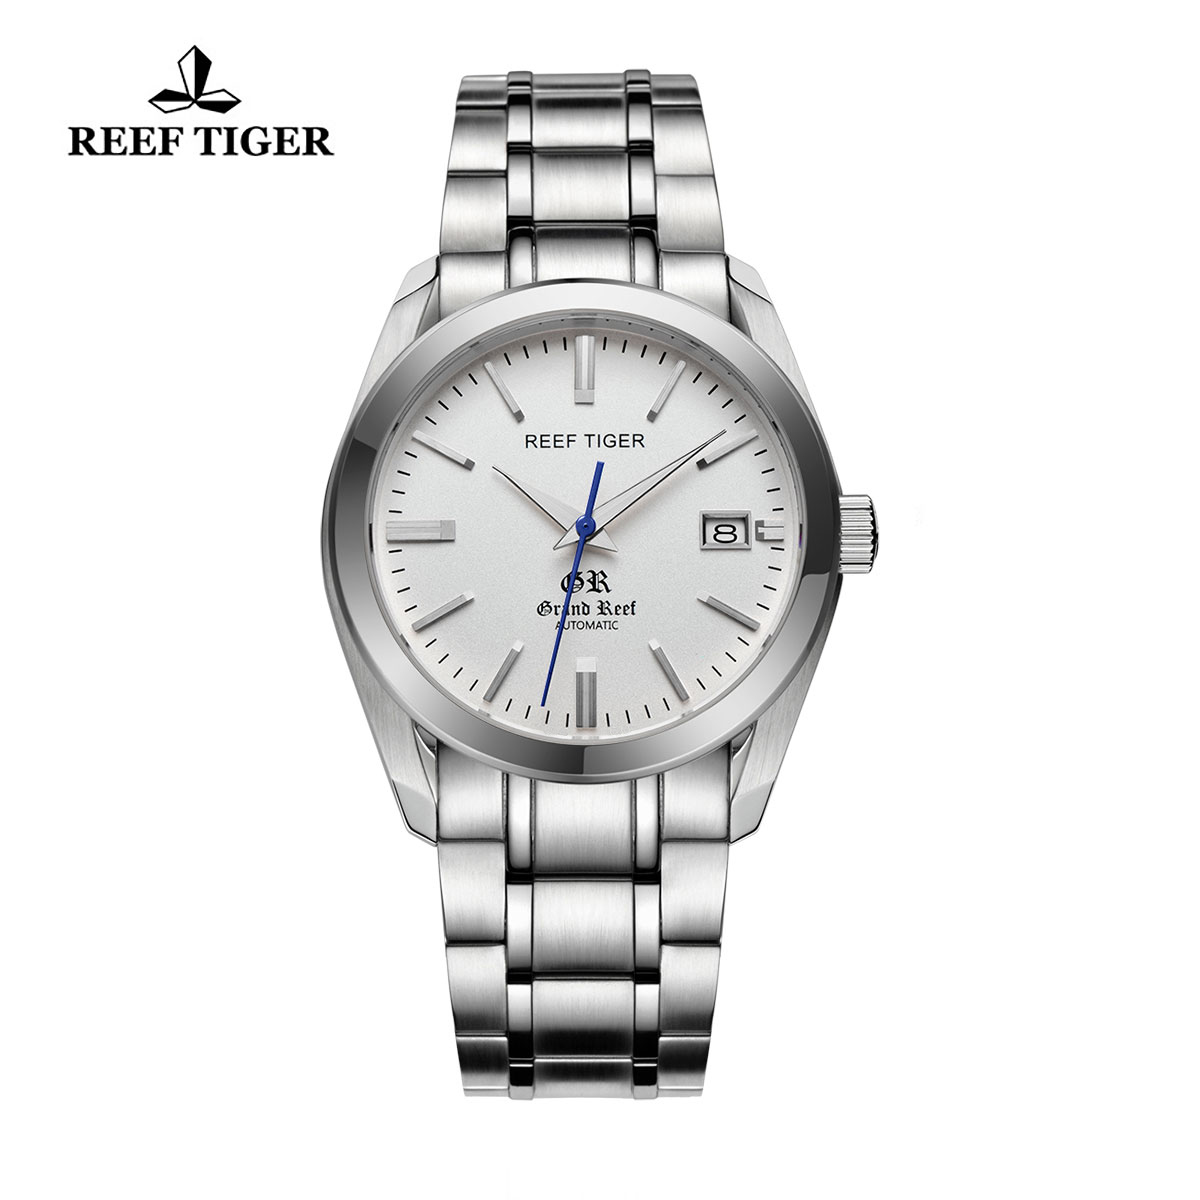 Reef Tiger Grand Reef Dress Watch with Date White Dial Stainless Steel Watch RGA818-YWY